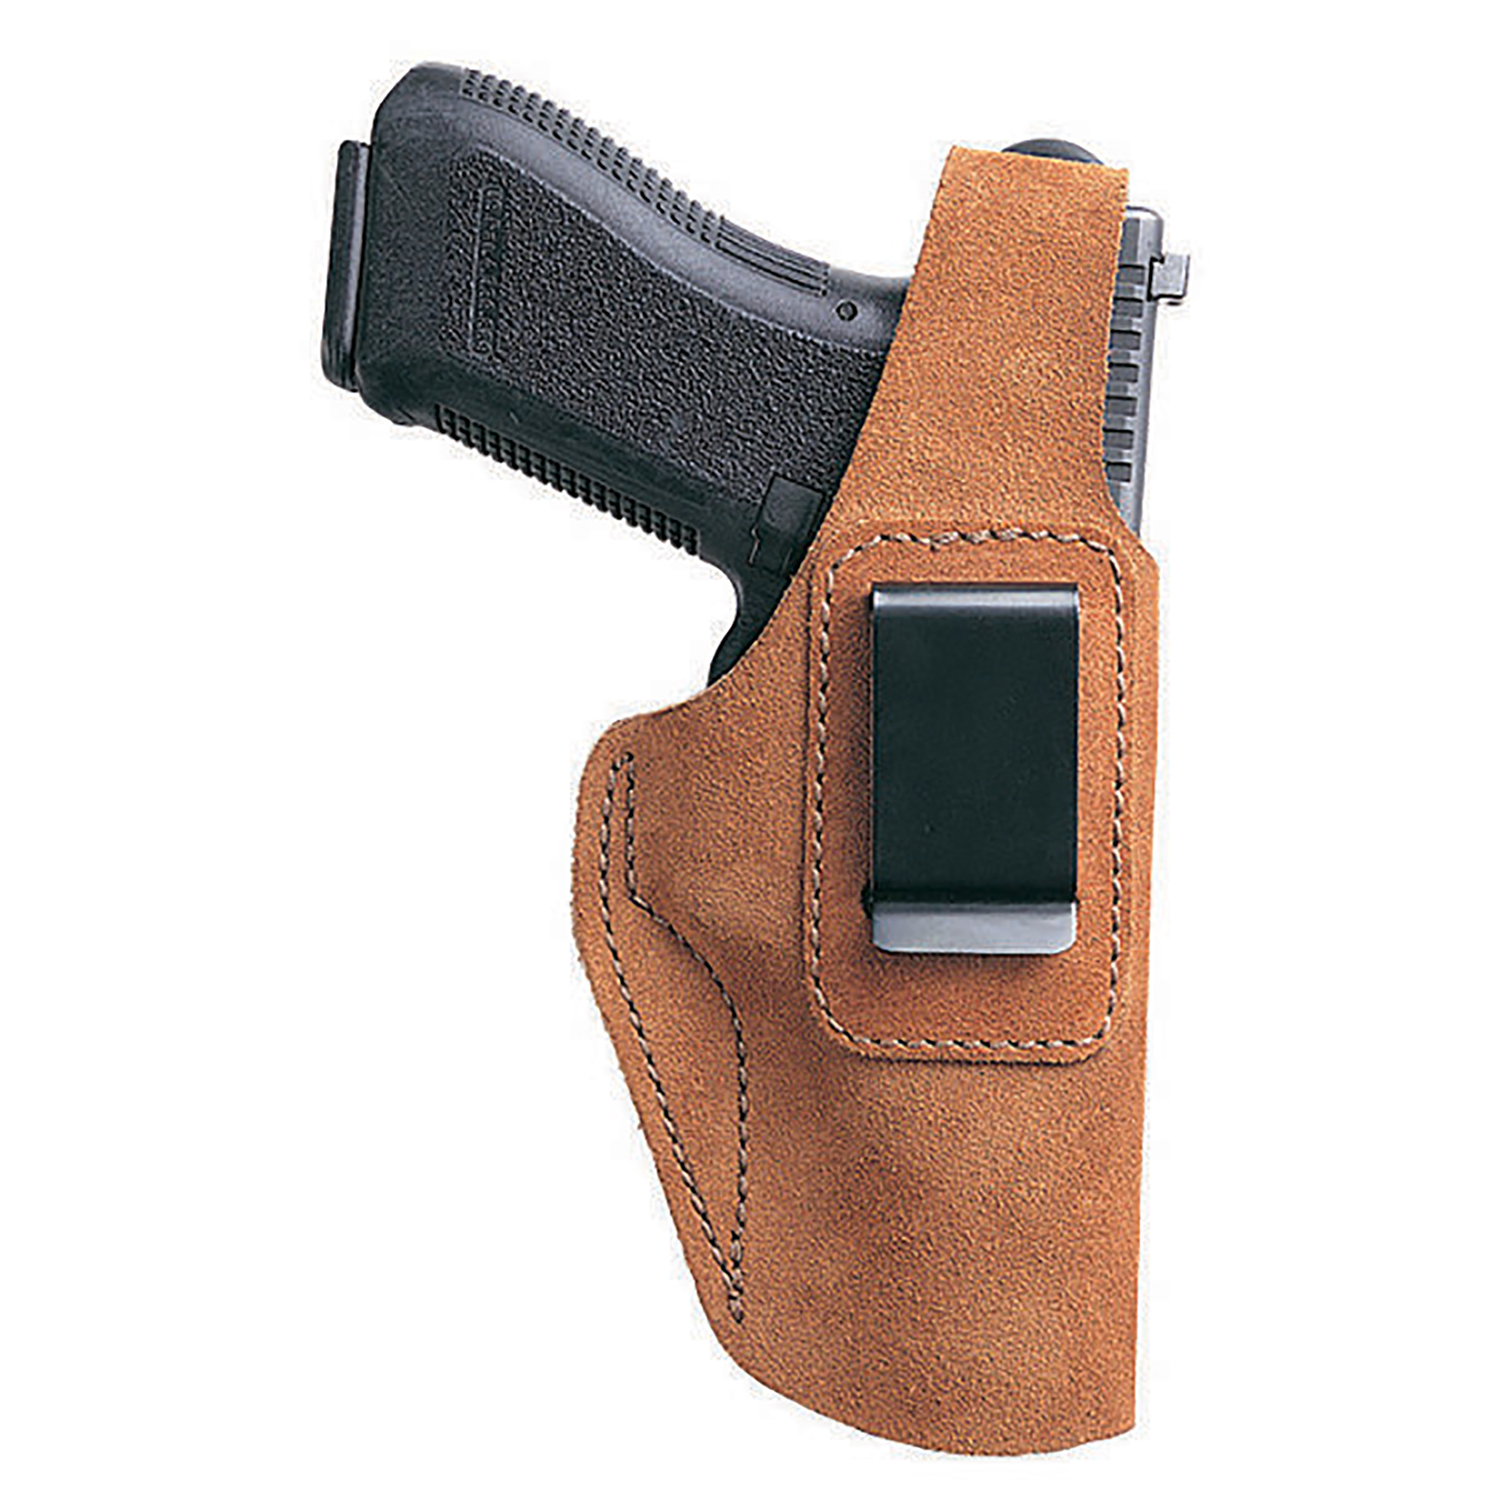 Bianchi Model 7120 Defender MidRide Duty Holster with Jacket